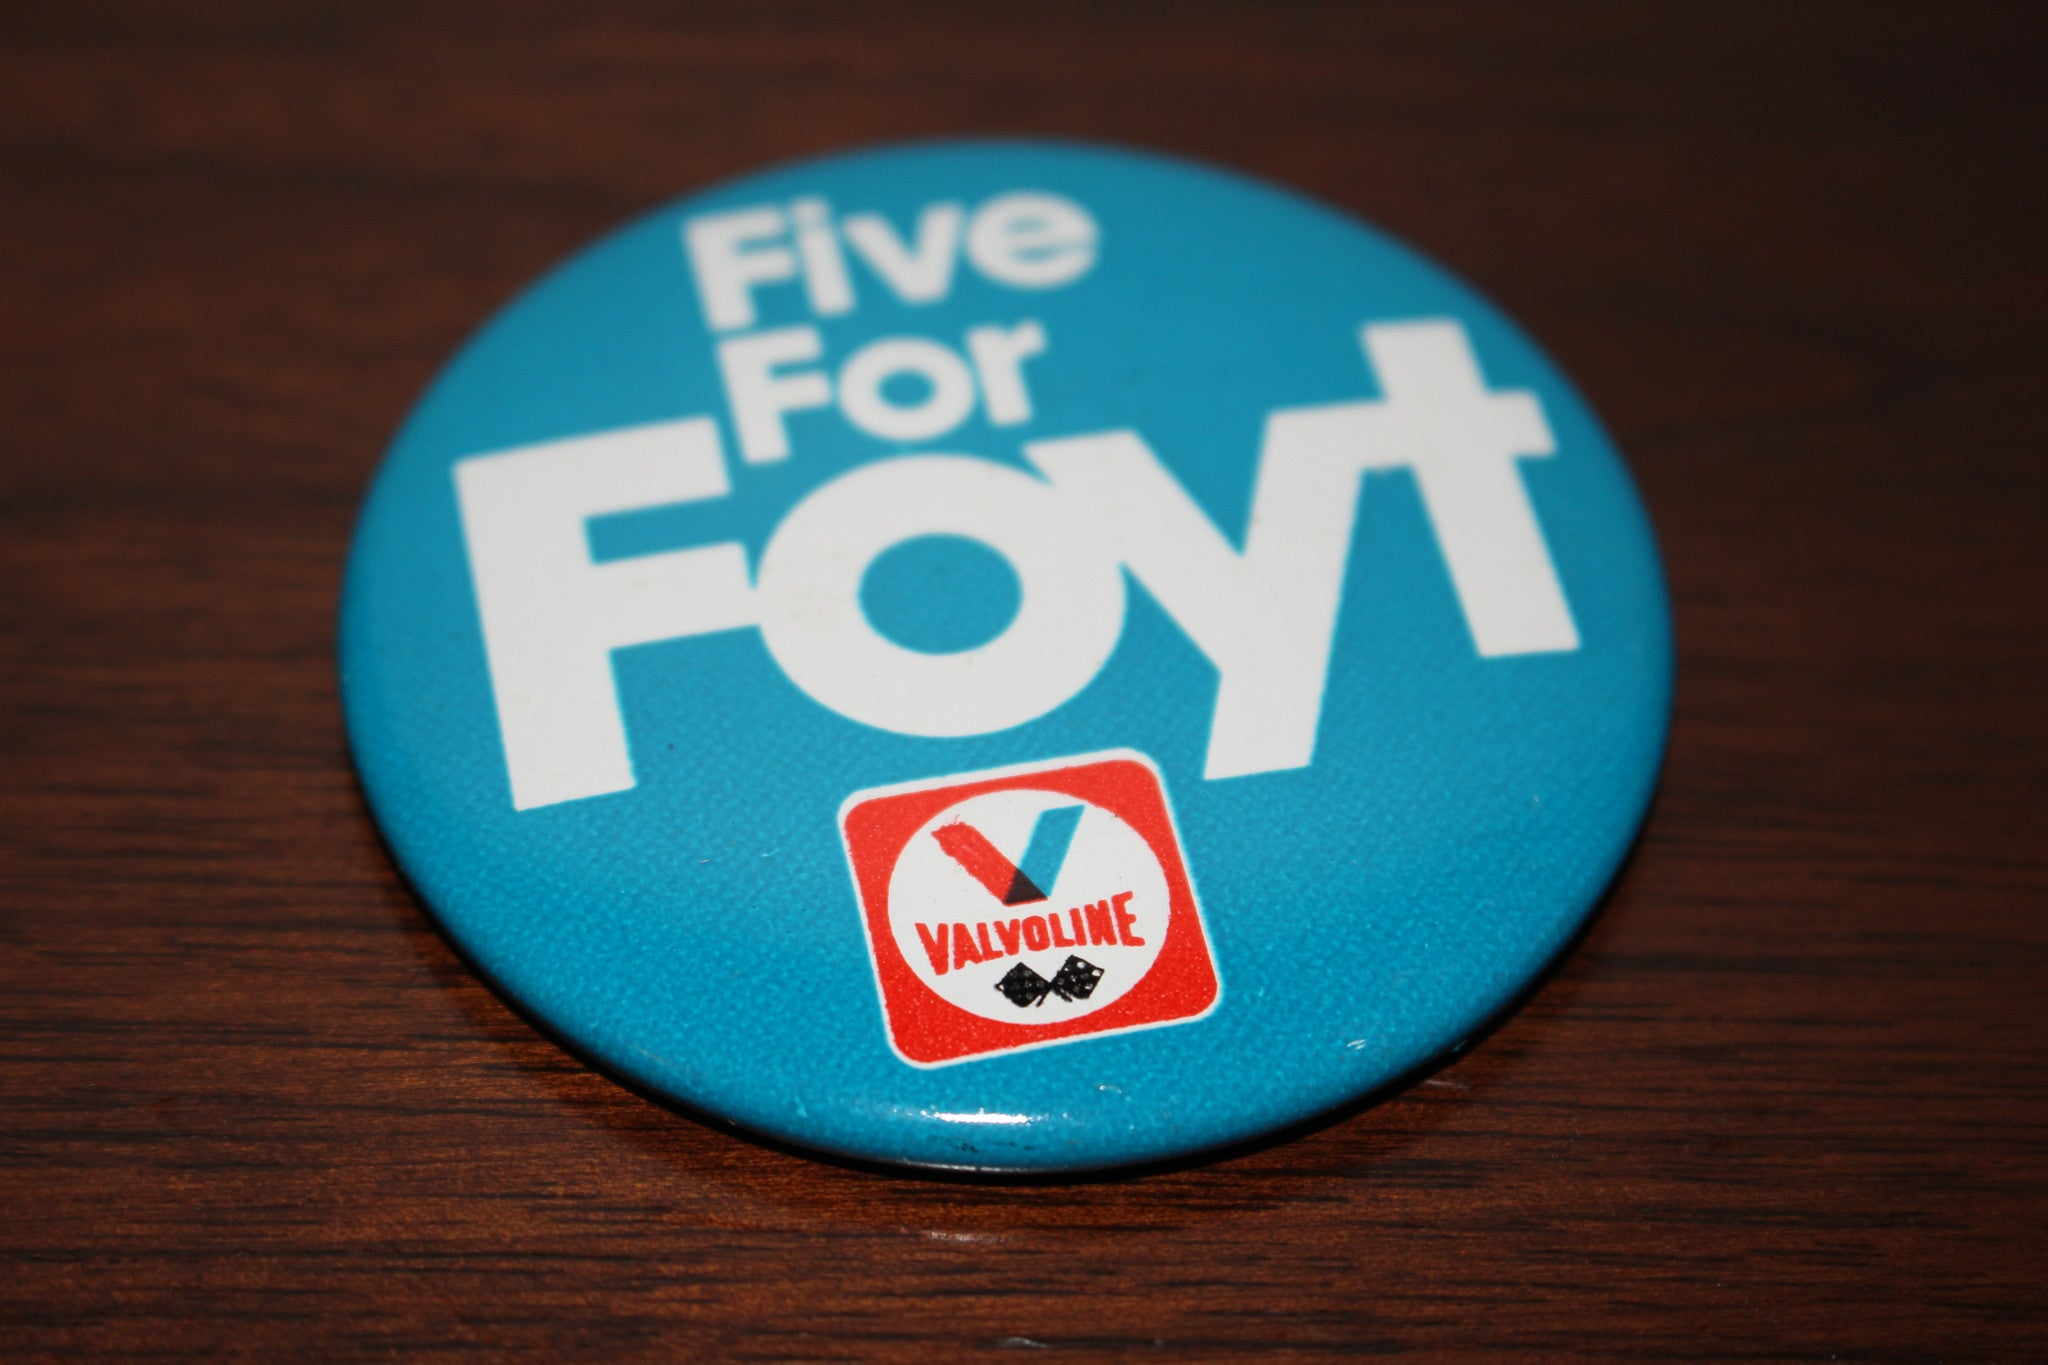 Vintage Five For Foyt PInback Button - Vintage Indy Sports